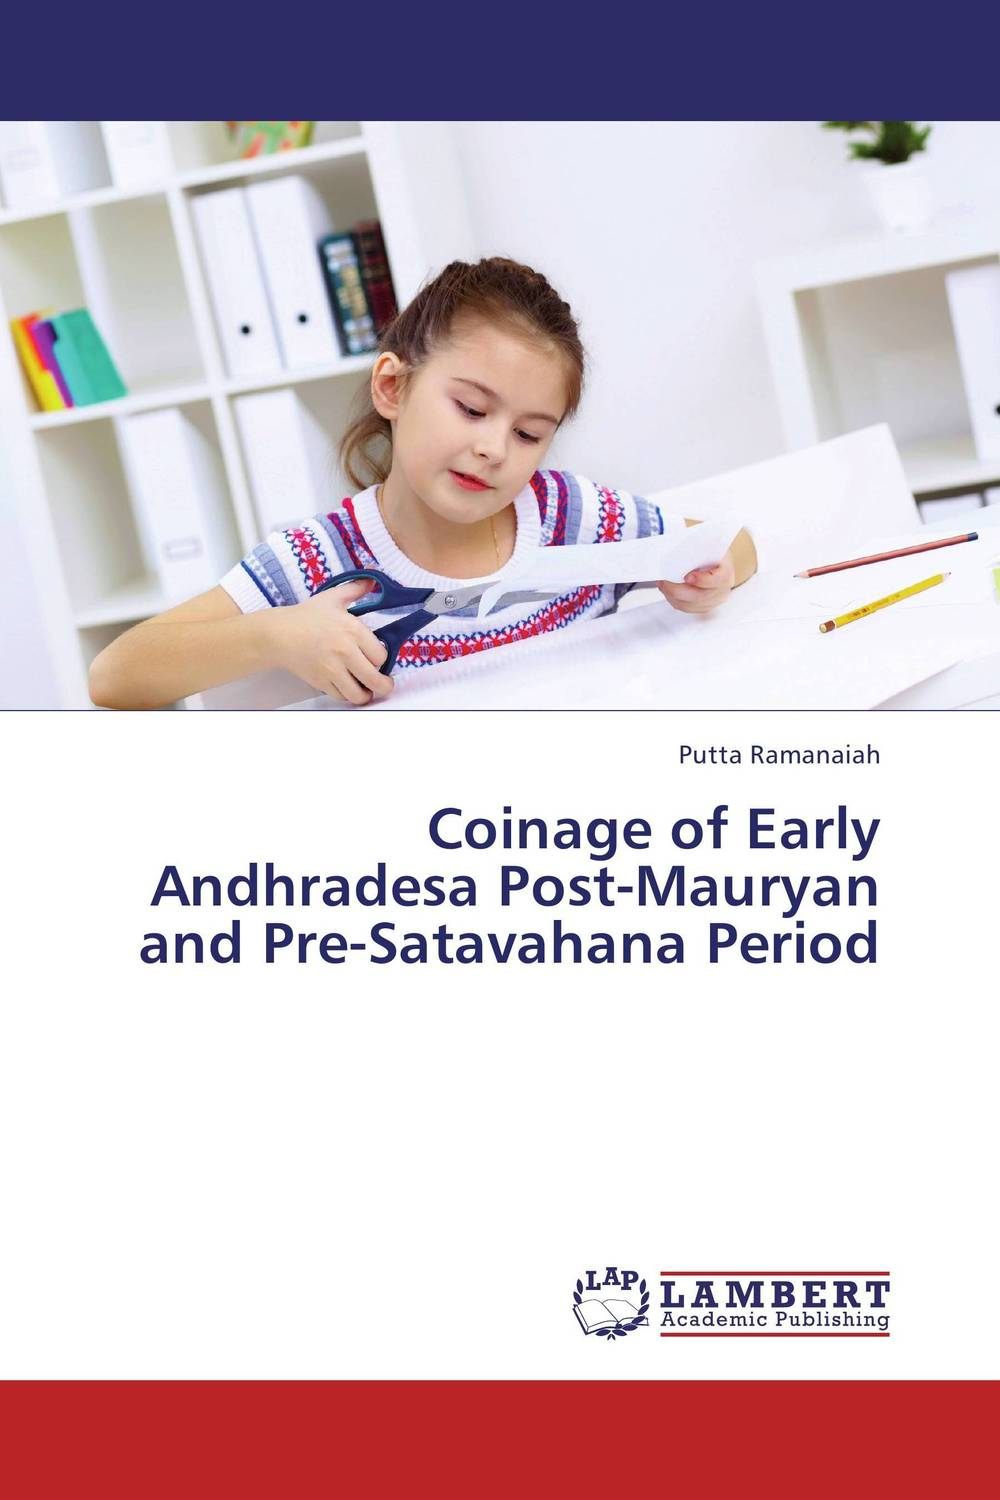 Coinage of Early Andhradesa Post-Mauryan and Pre-Satavahana Period samuel richardson clarissa or the history of a young lady vol 8